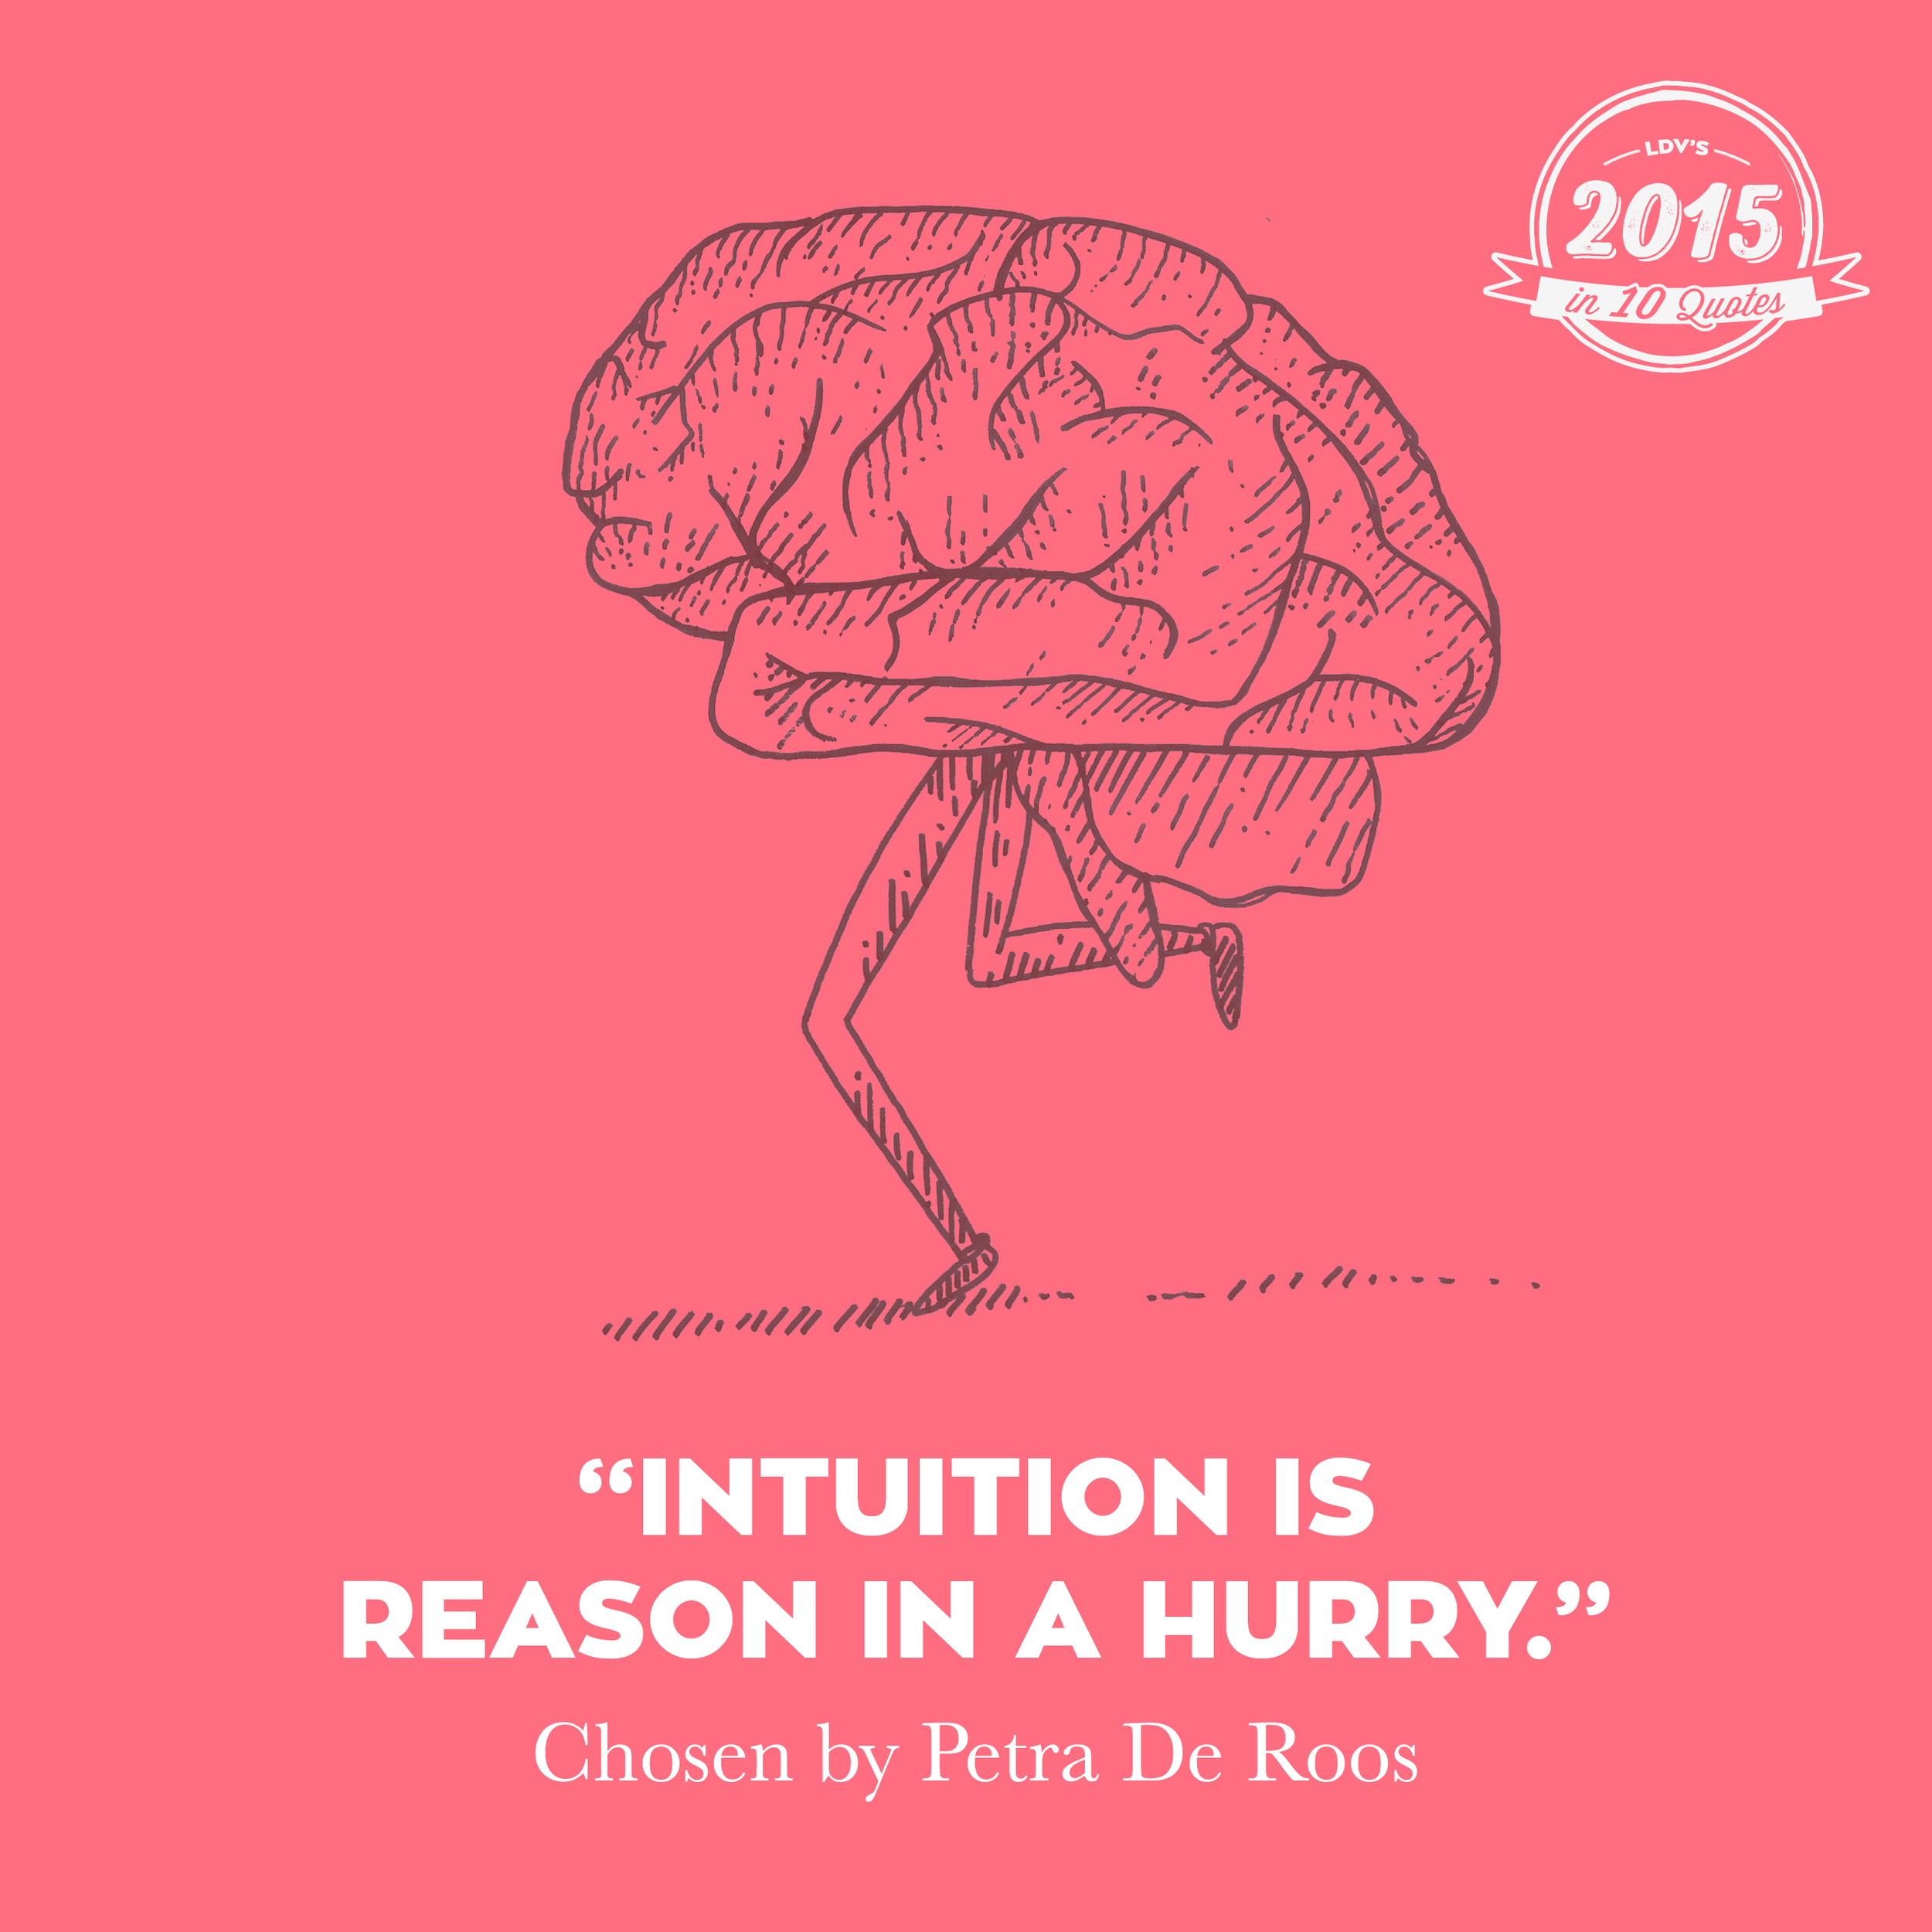 """Petra De Roos - our brains on leg (duh)  """"I heard this quote in a talk by Marc Lammers (although I think he also cunningly stole it from someone else). It's so reassuring to feel that gut feeling isn't just something fluffy. If you talk to psychologists, they'll confirm it. It's our brains taking shortcuts and informing us faster. So I'm in favour of trusting our intuition more in 2016."""" #2015in10quotes #thisisLDV"""